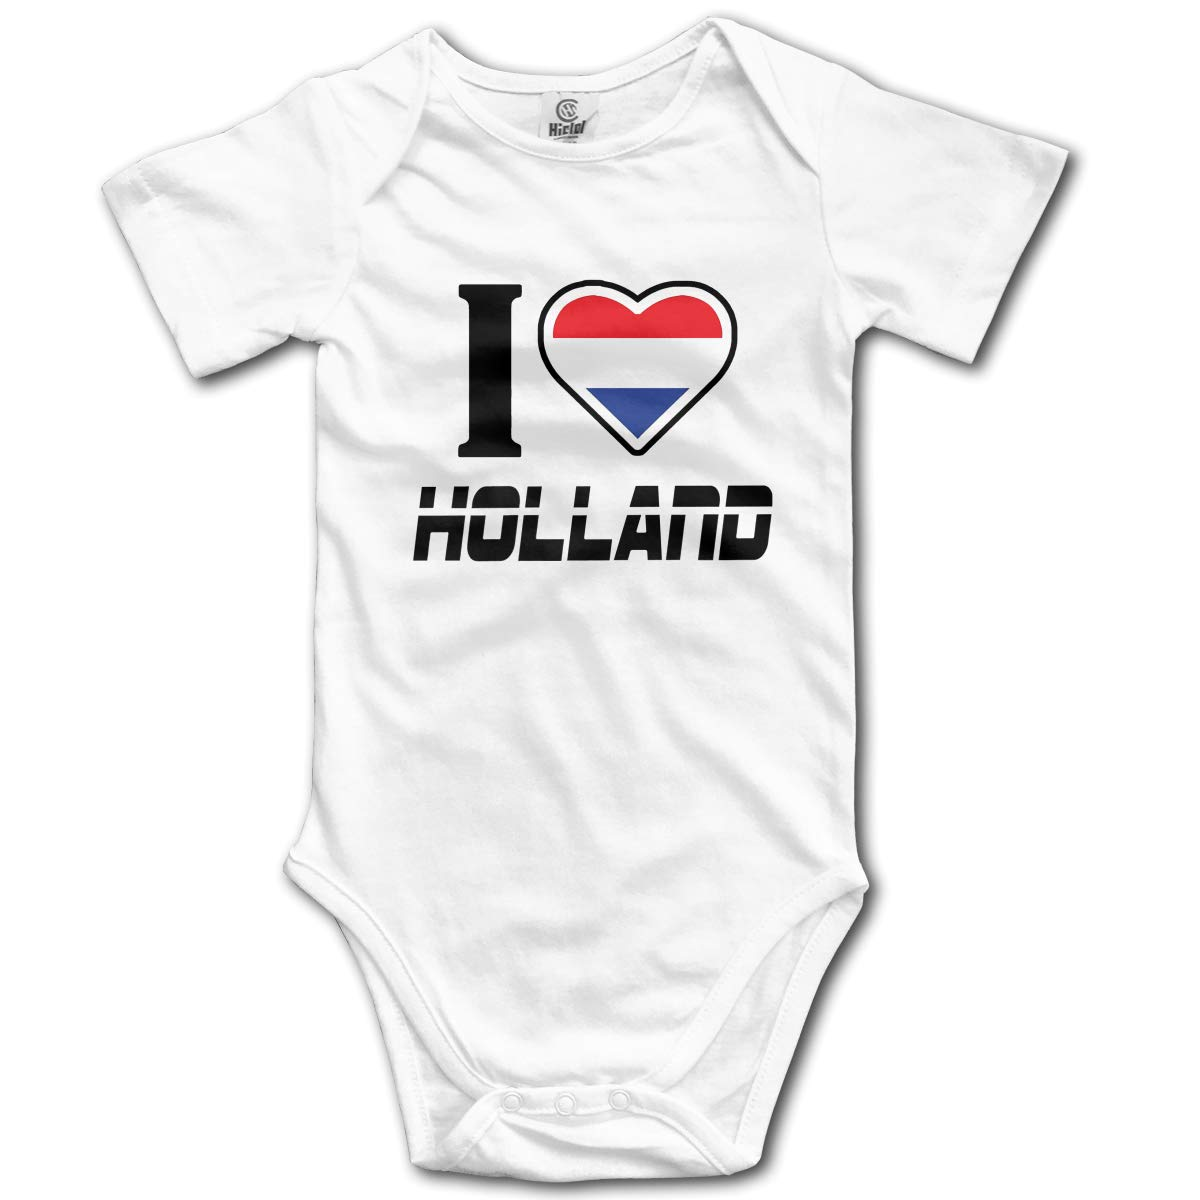 I Love Holland Printed Toddler Baby Girls Short-Sleeved Bodysuit Jumpsuit Outfits